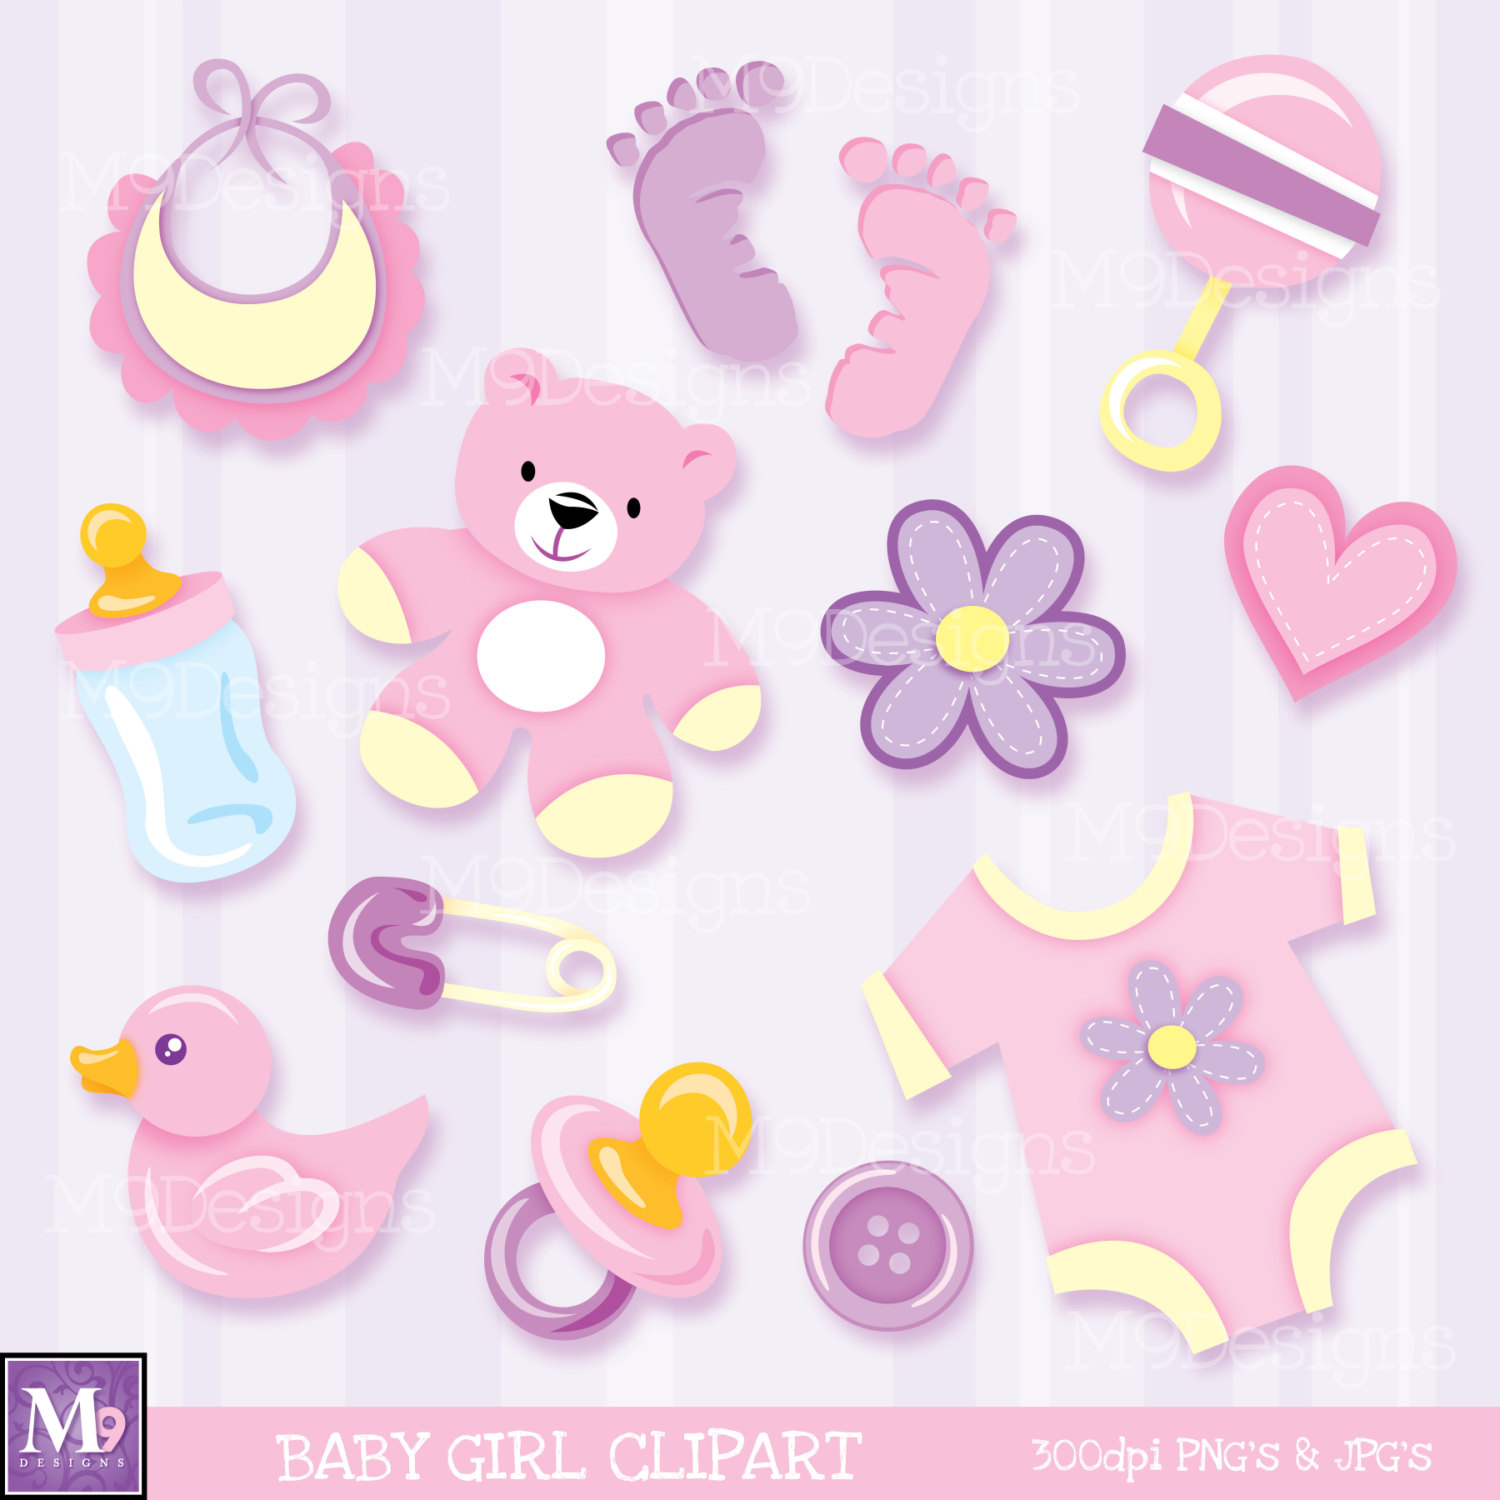 Clipart Of Baby Girl.